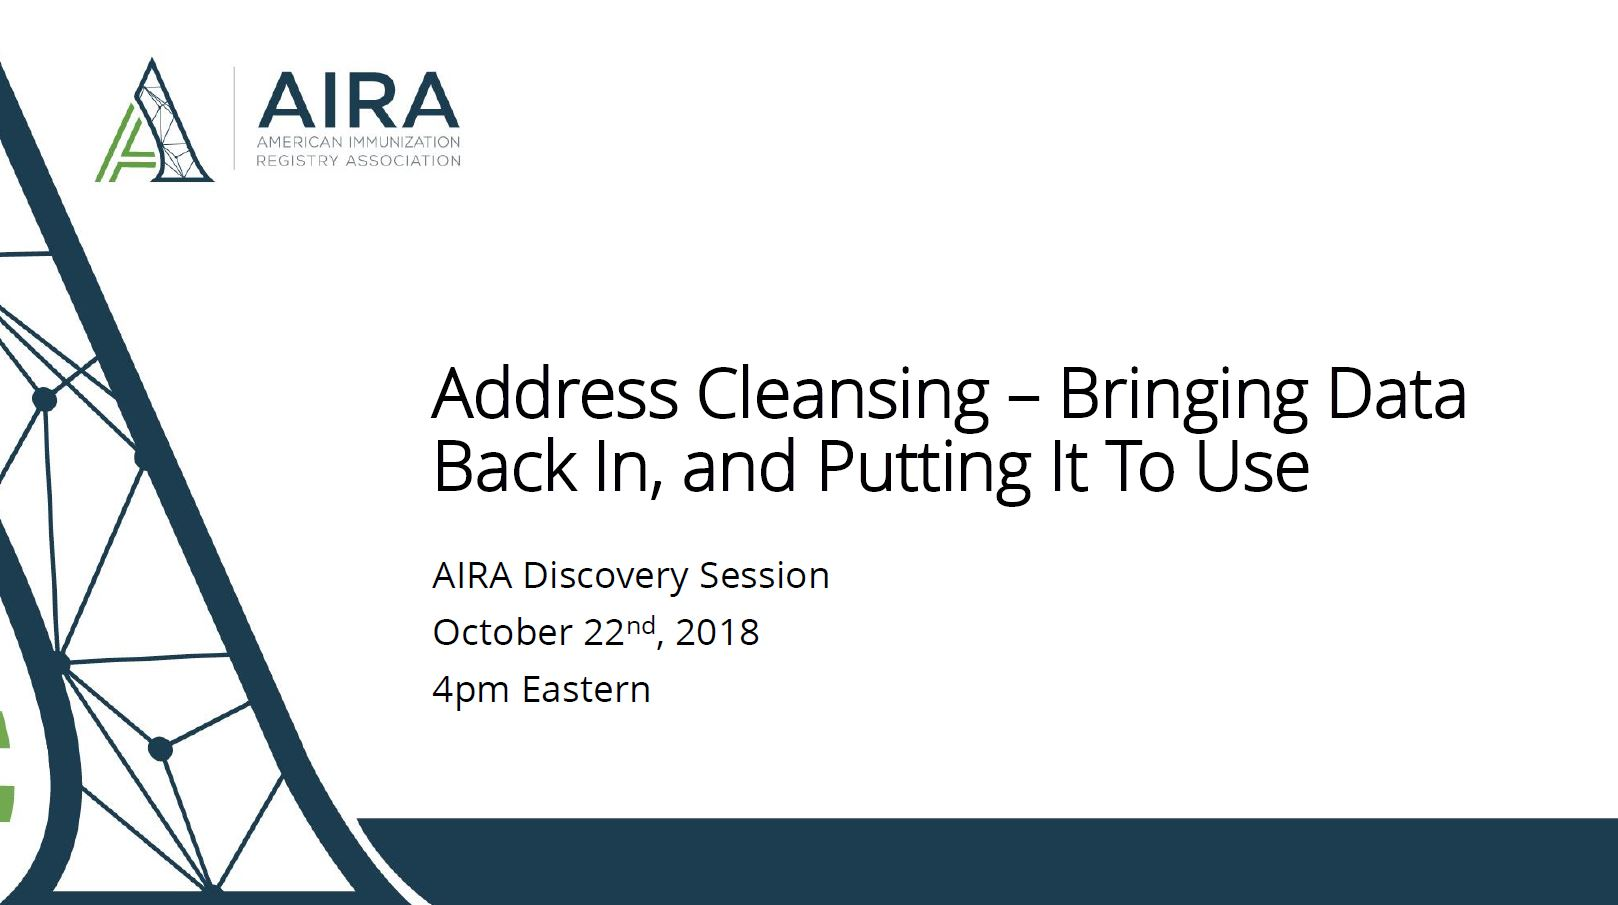 AIRA Discovery Session: Address Cleansing